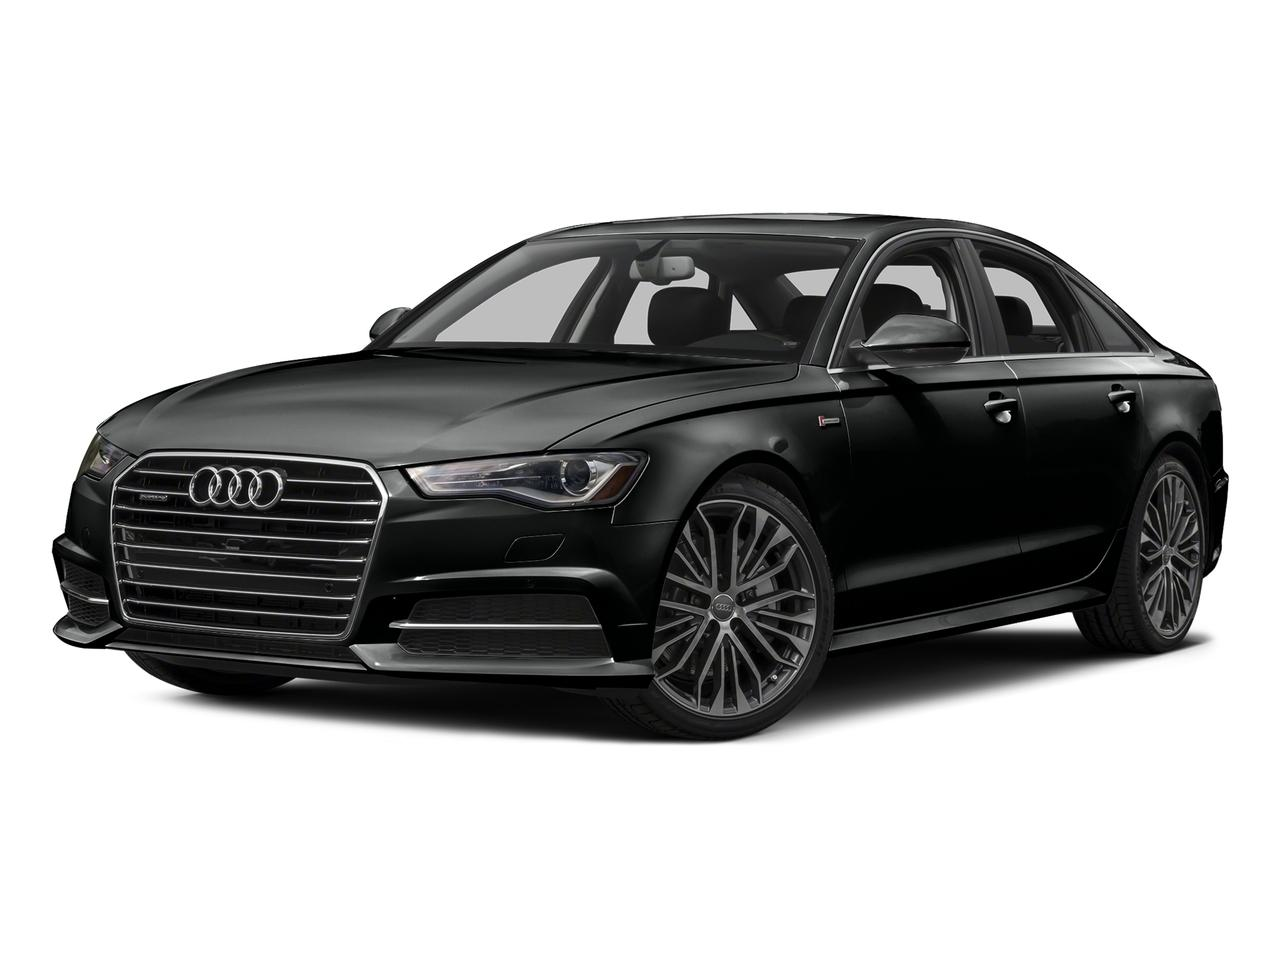 2017 Audi A6 Vehicle Photo in Colorado Springs, CO 80905